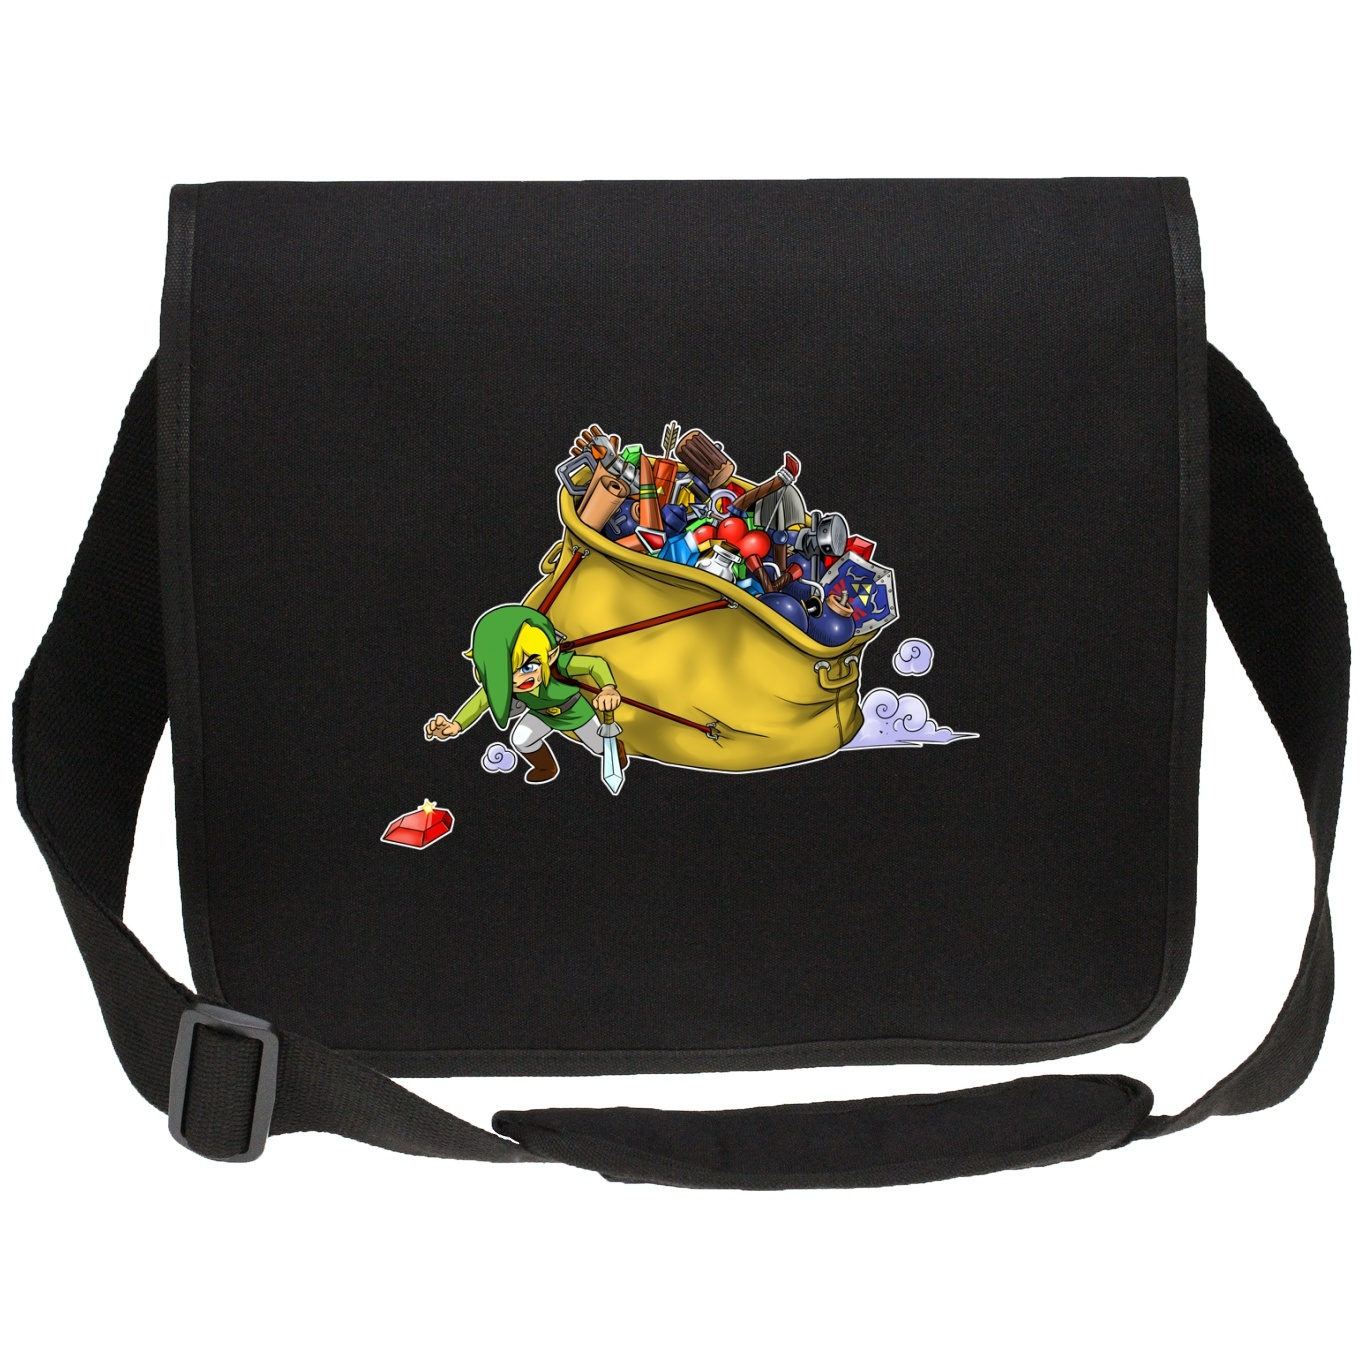 Canvas Messenger Bags Video Games Parodies